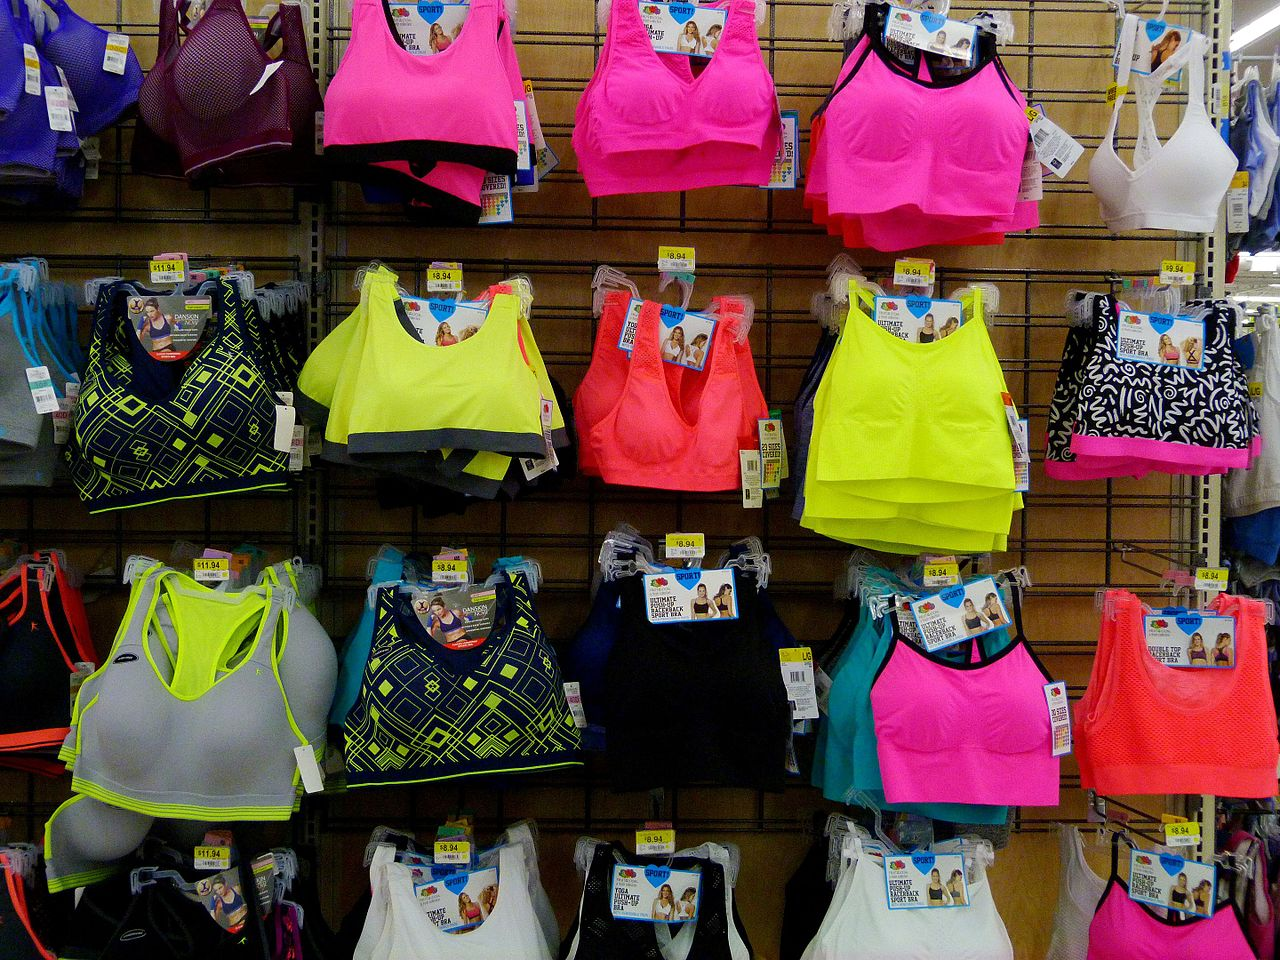 Colorful_sports_bras_in_Walmart.jpg